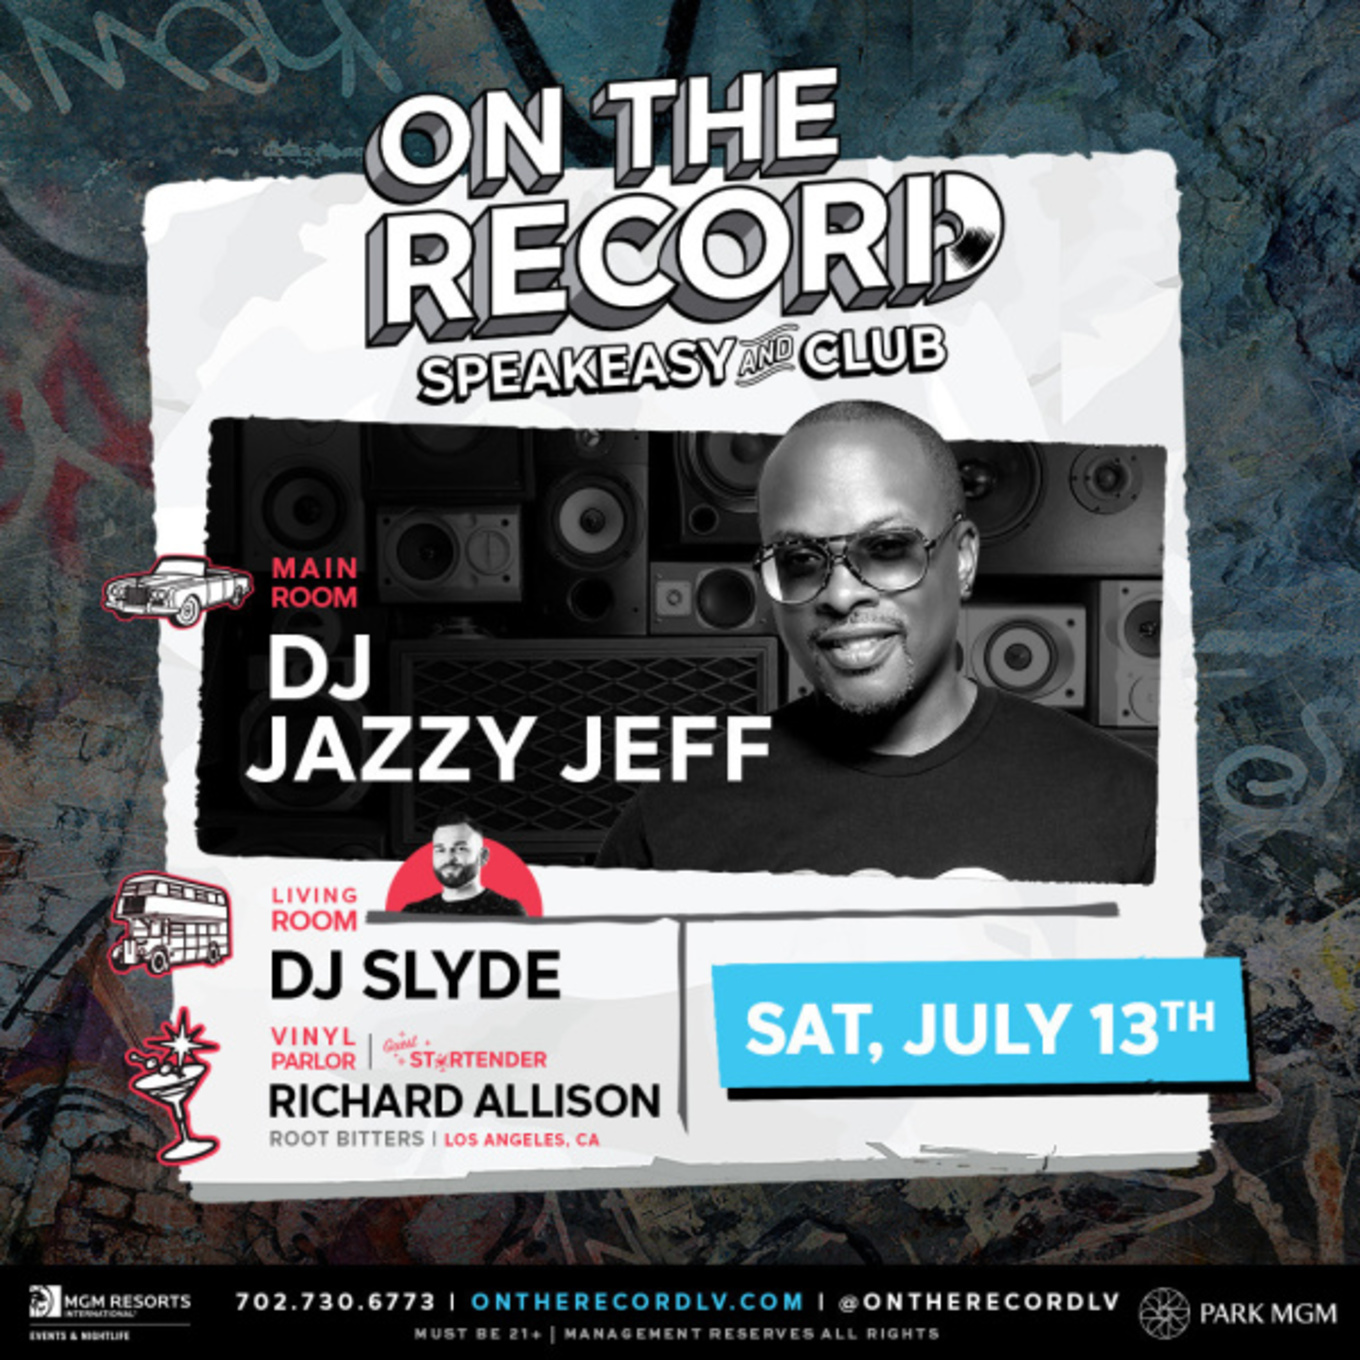 On The Record feat  DJ JAZZY JEFF - Tickets - PARK MGM, Las